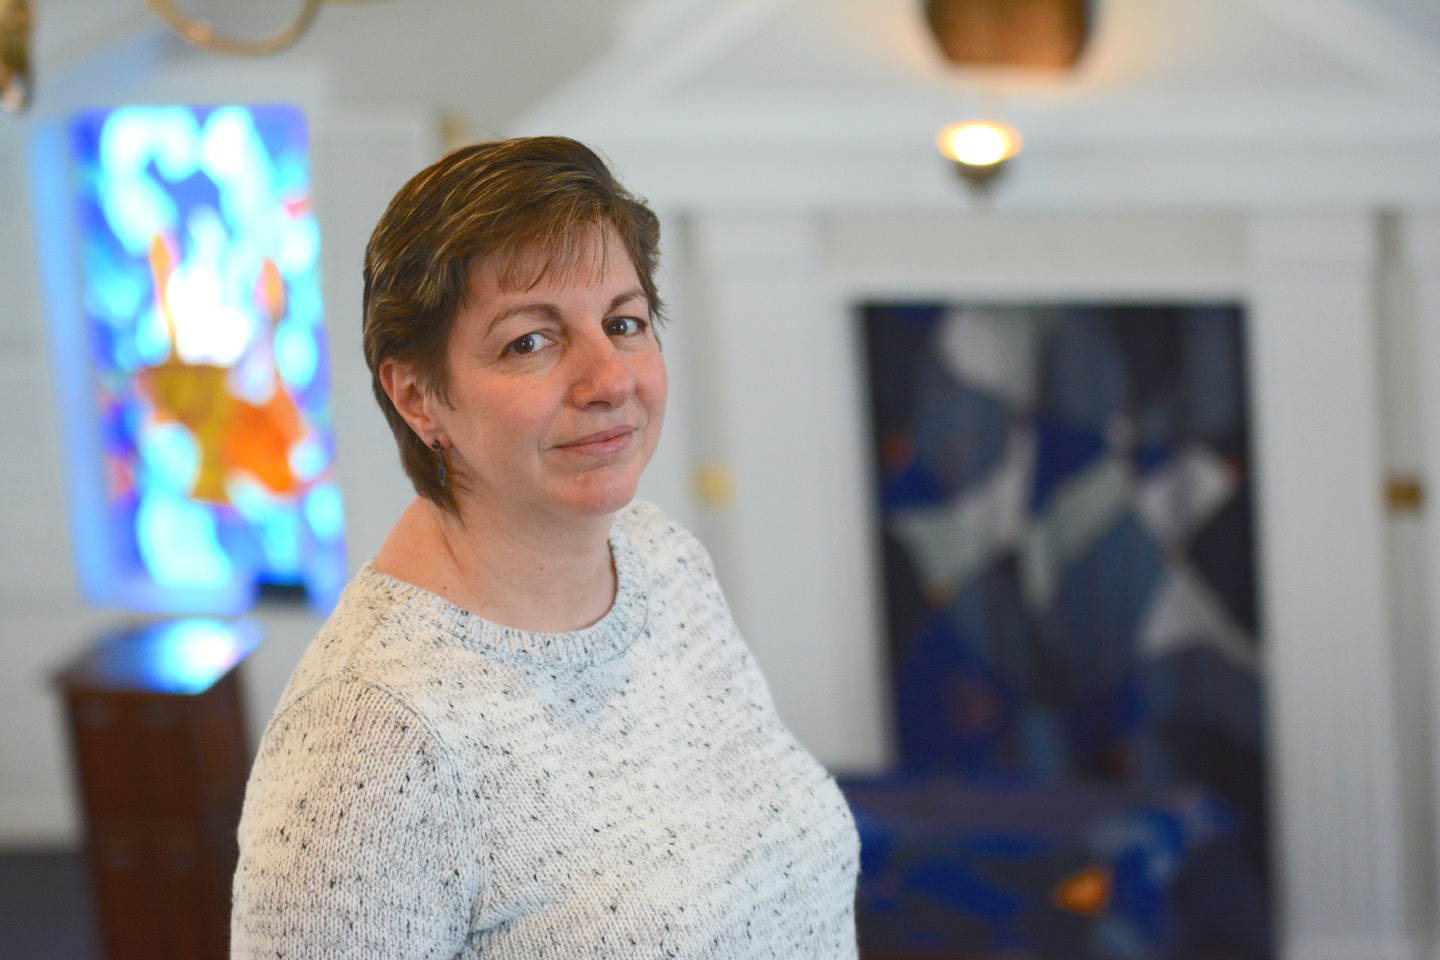 Temple Beth David President Kim Math at the synagogue in Cheshire on Monday, March 6. | Bryan Lipiner, Record-Journal